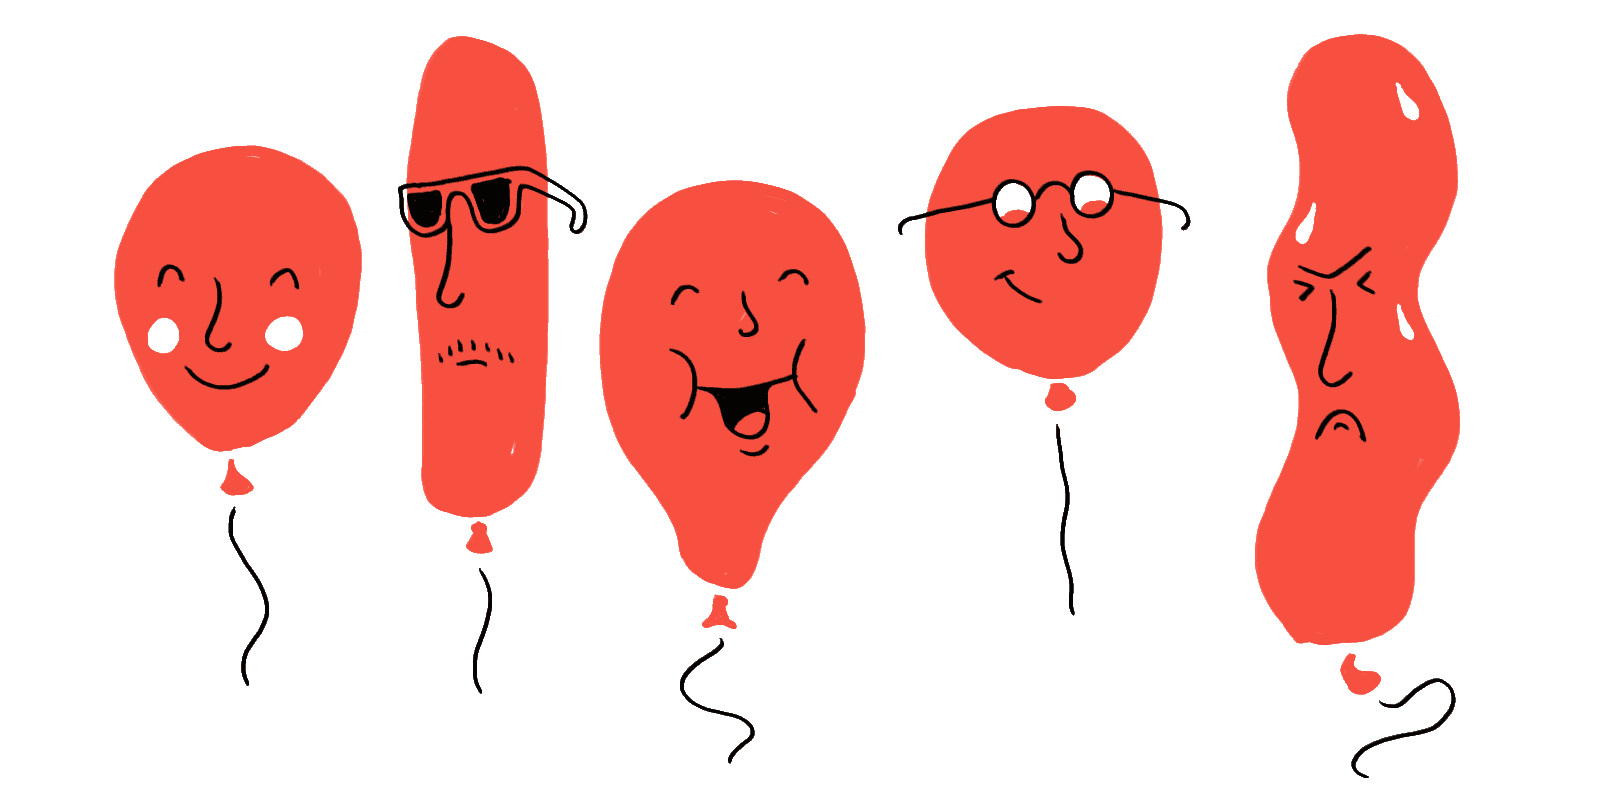 Balloons on a party